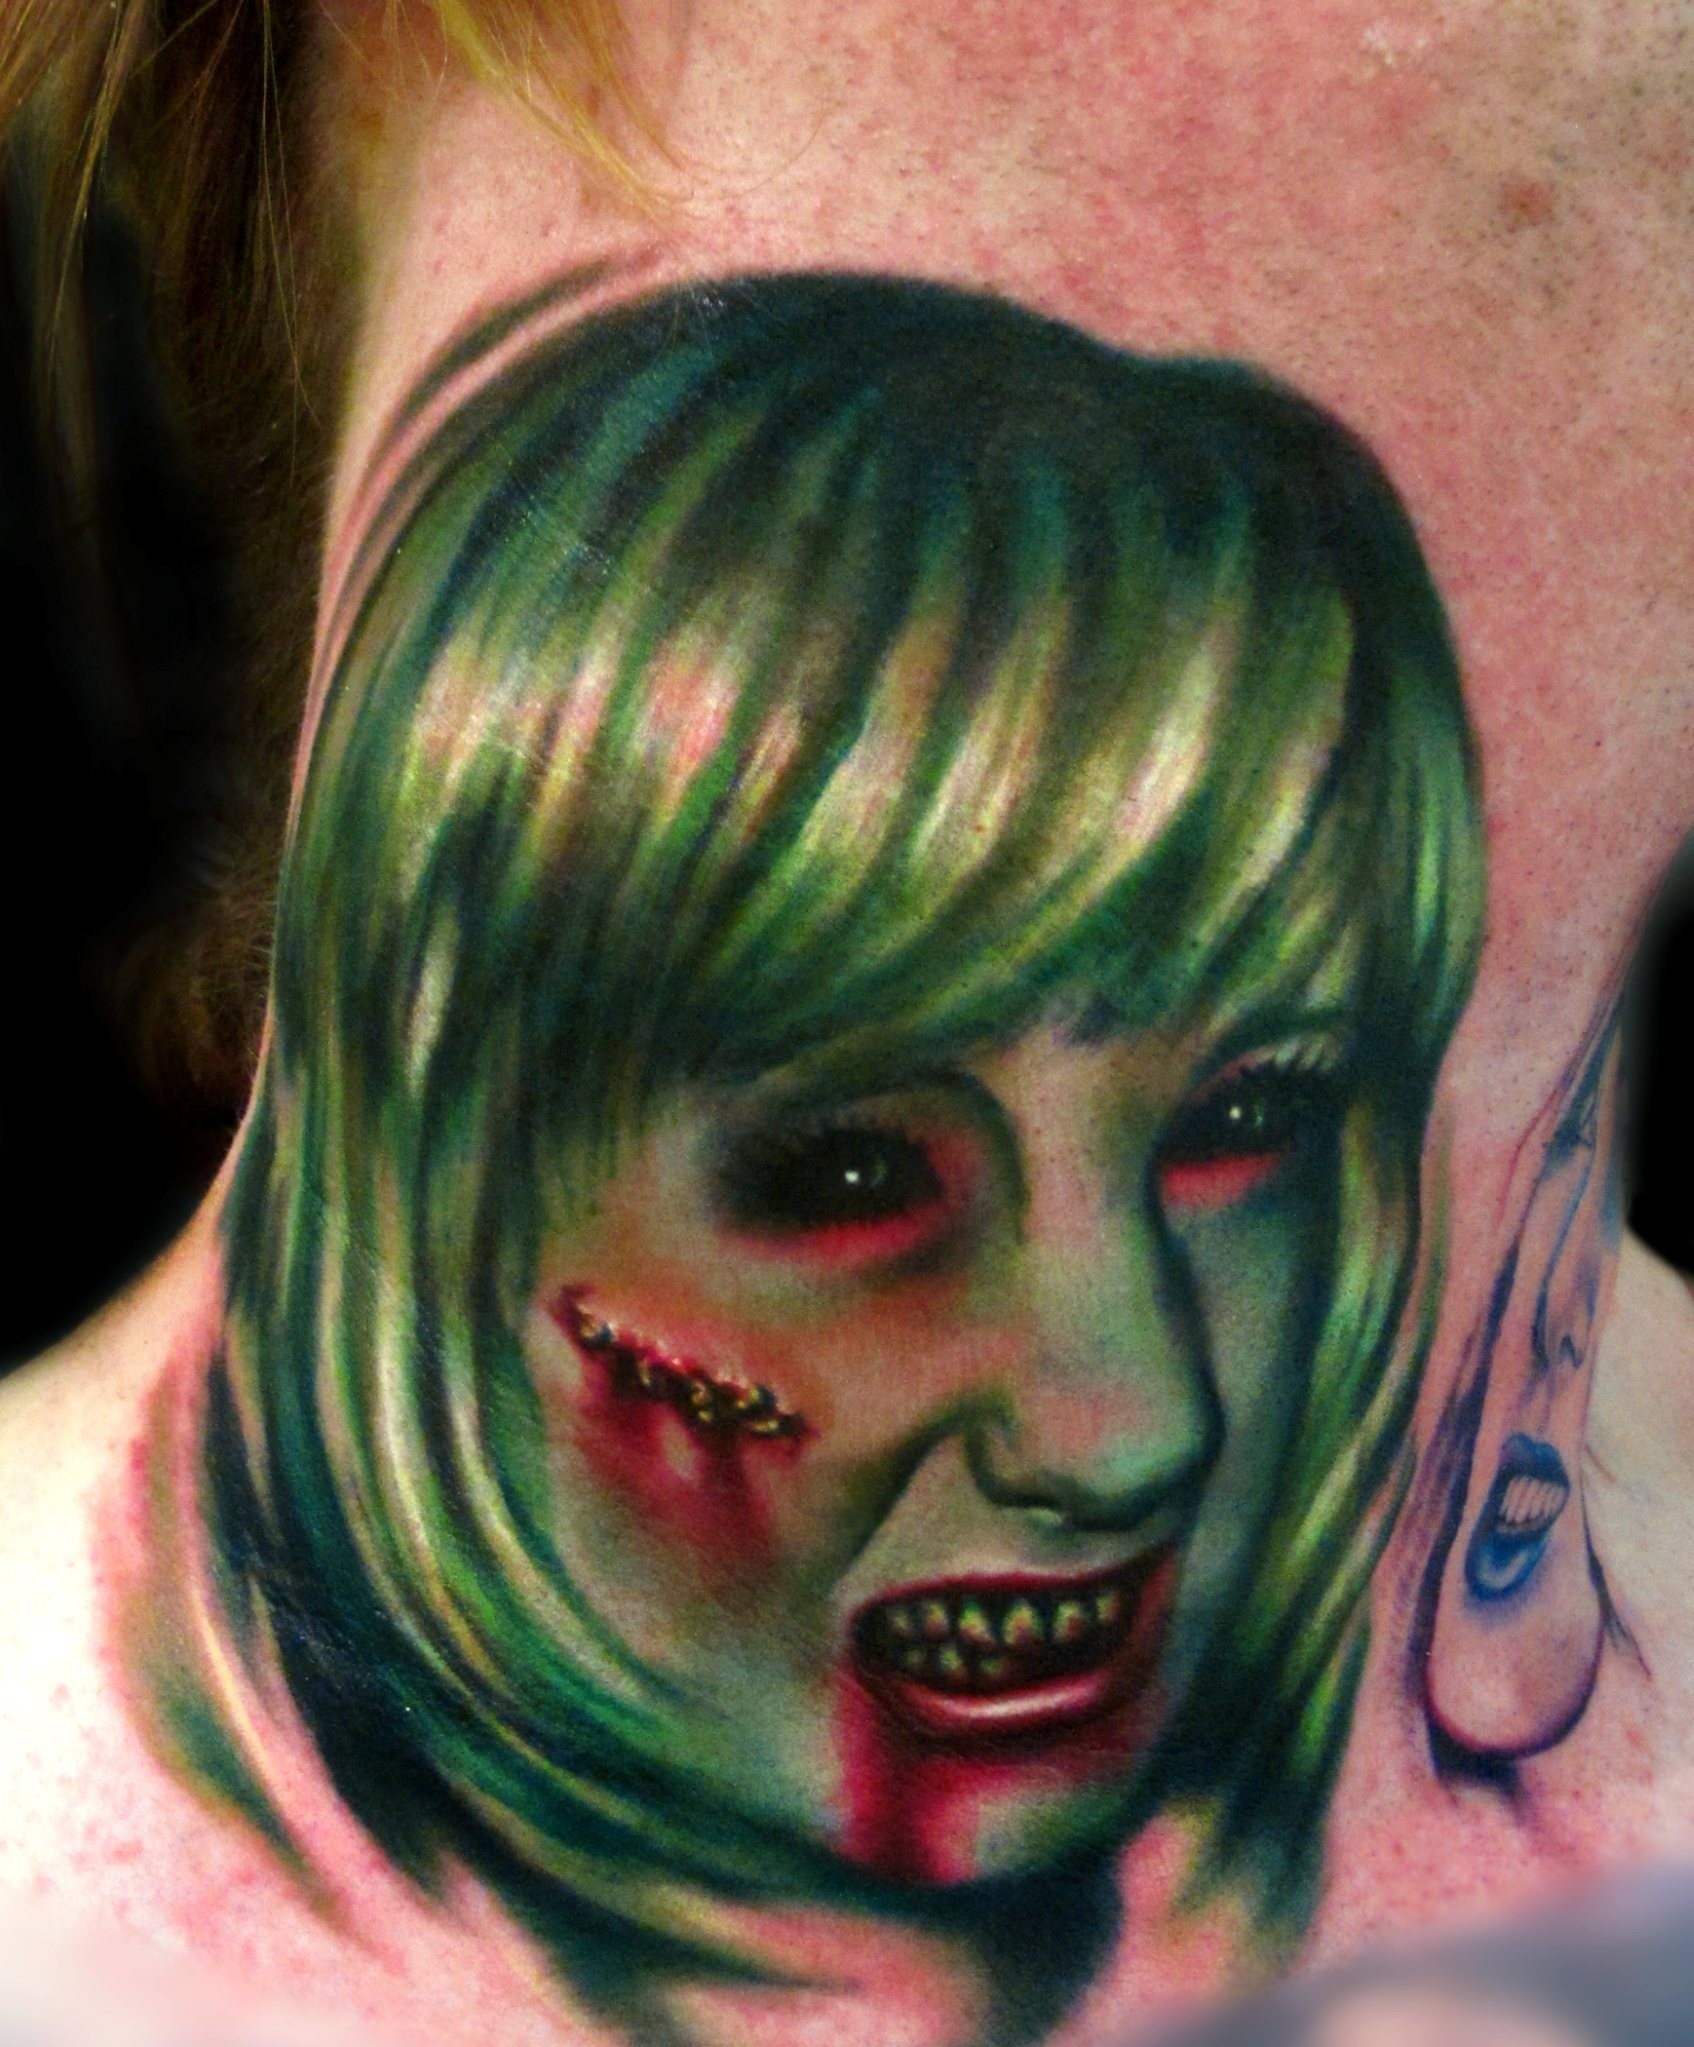 Portrait Tattoo Zombie Green Girl Realistic Liz Cook Dallas Texas 300res.jpg